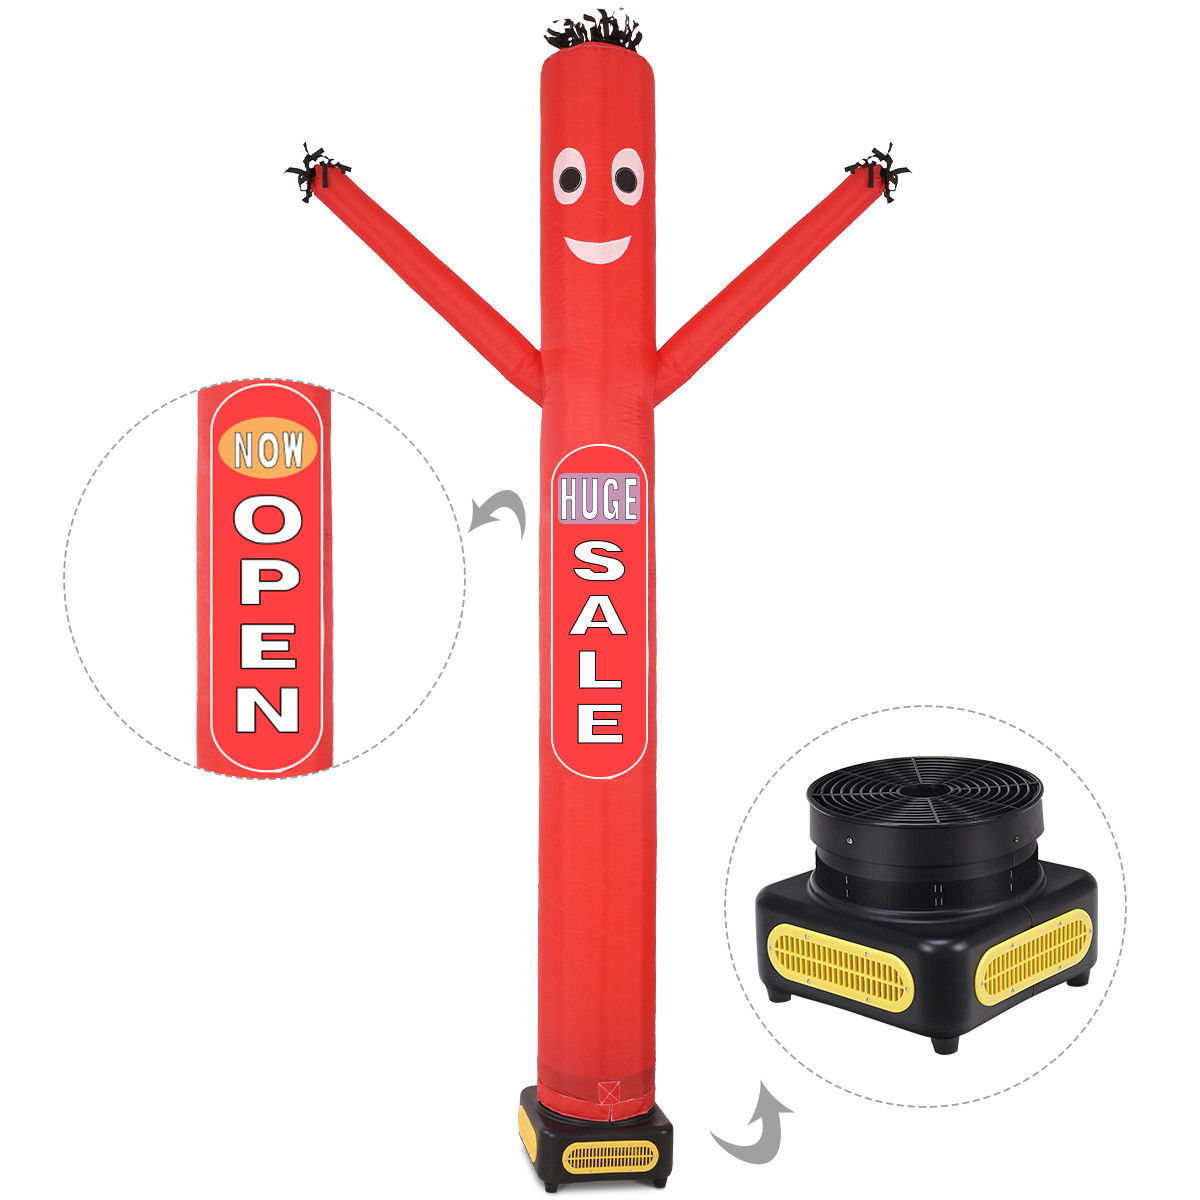 Costway 10ft Inflatable Dancer Puppet Tube Man Removable Slogans With Blower Red by Costway